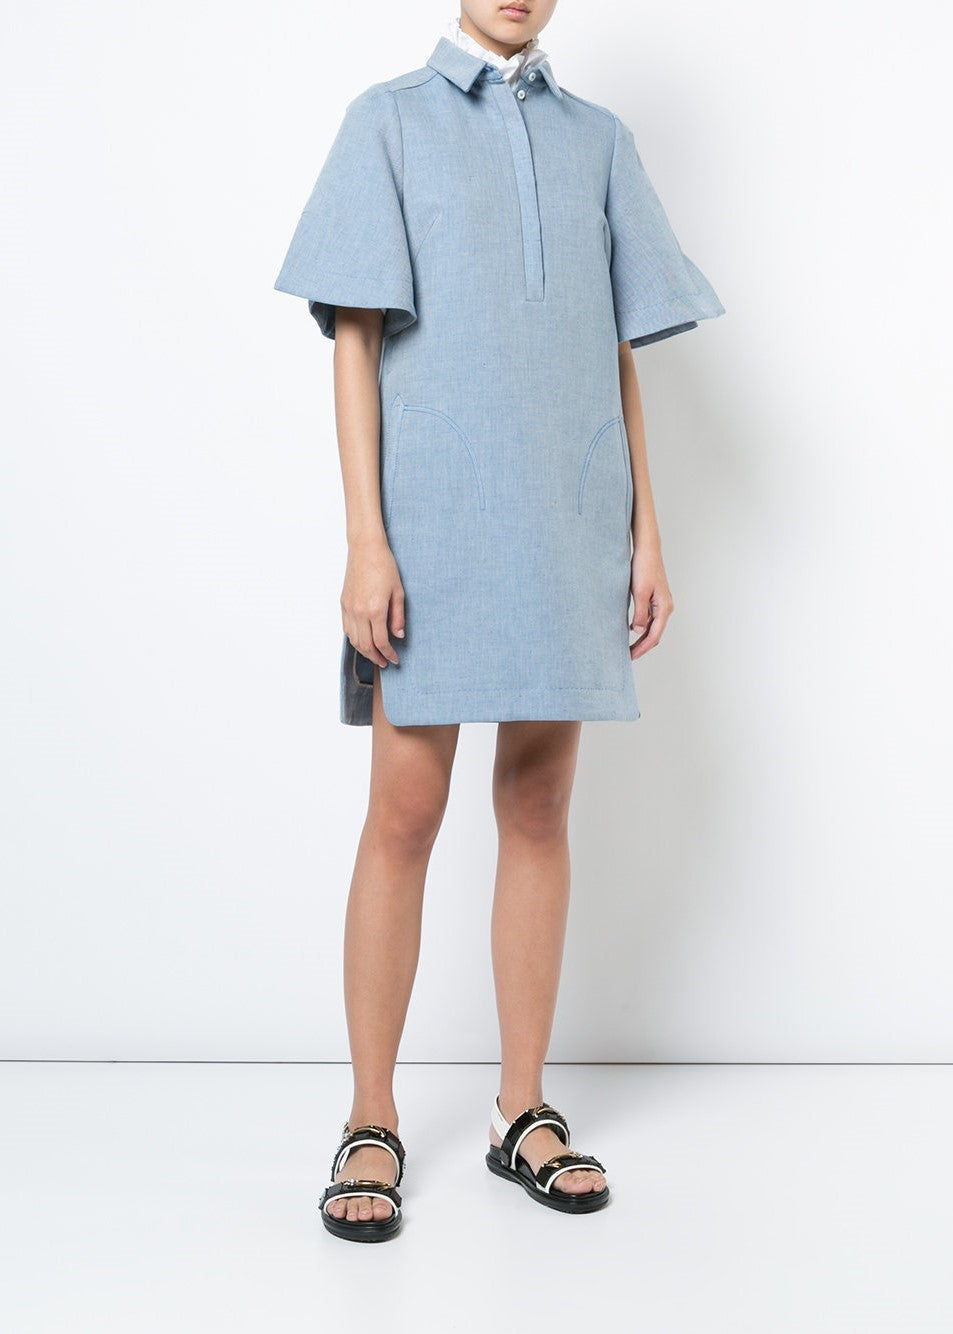 Carven short sleeve dress blue